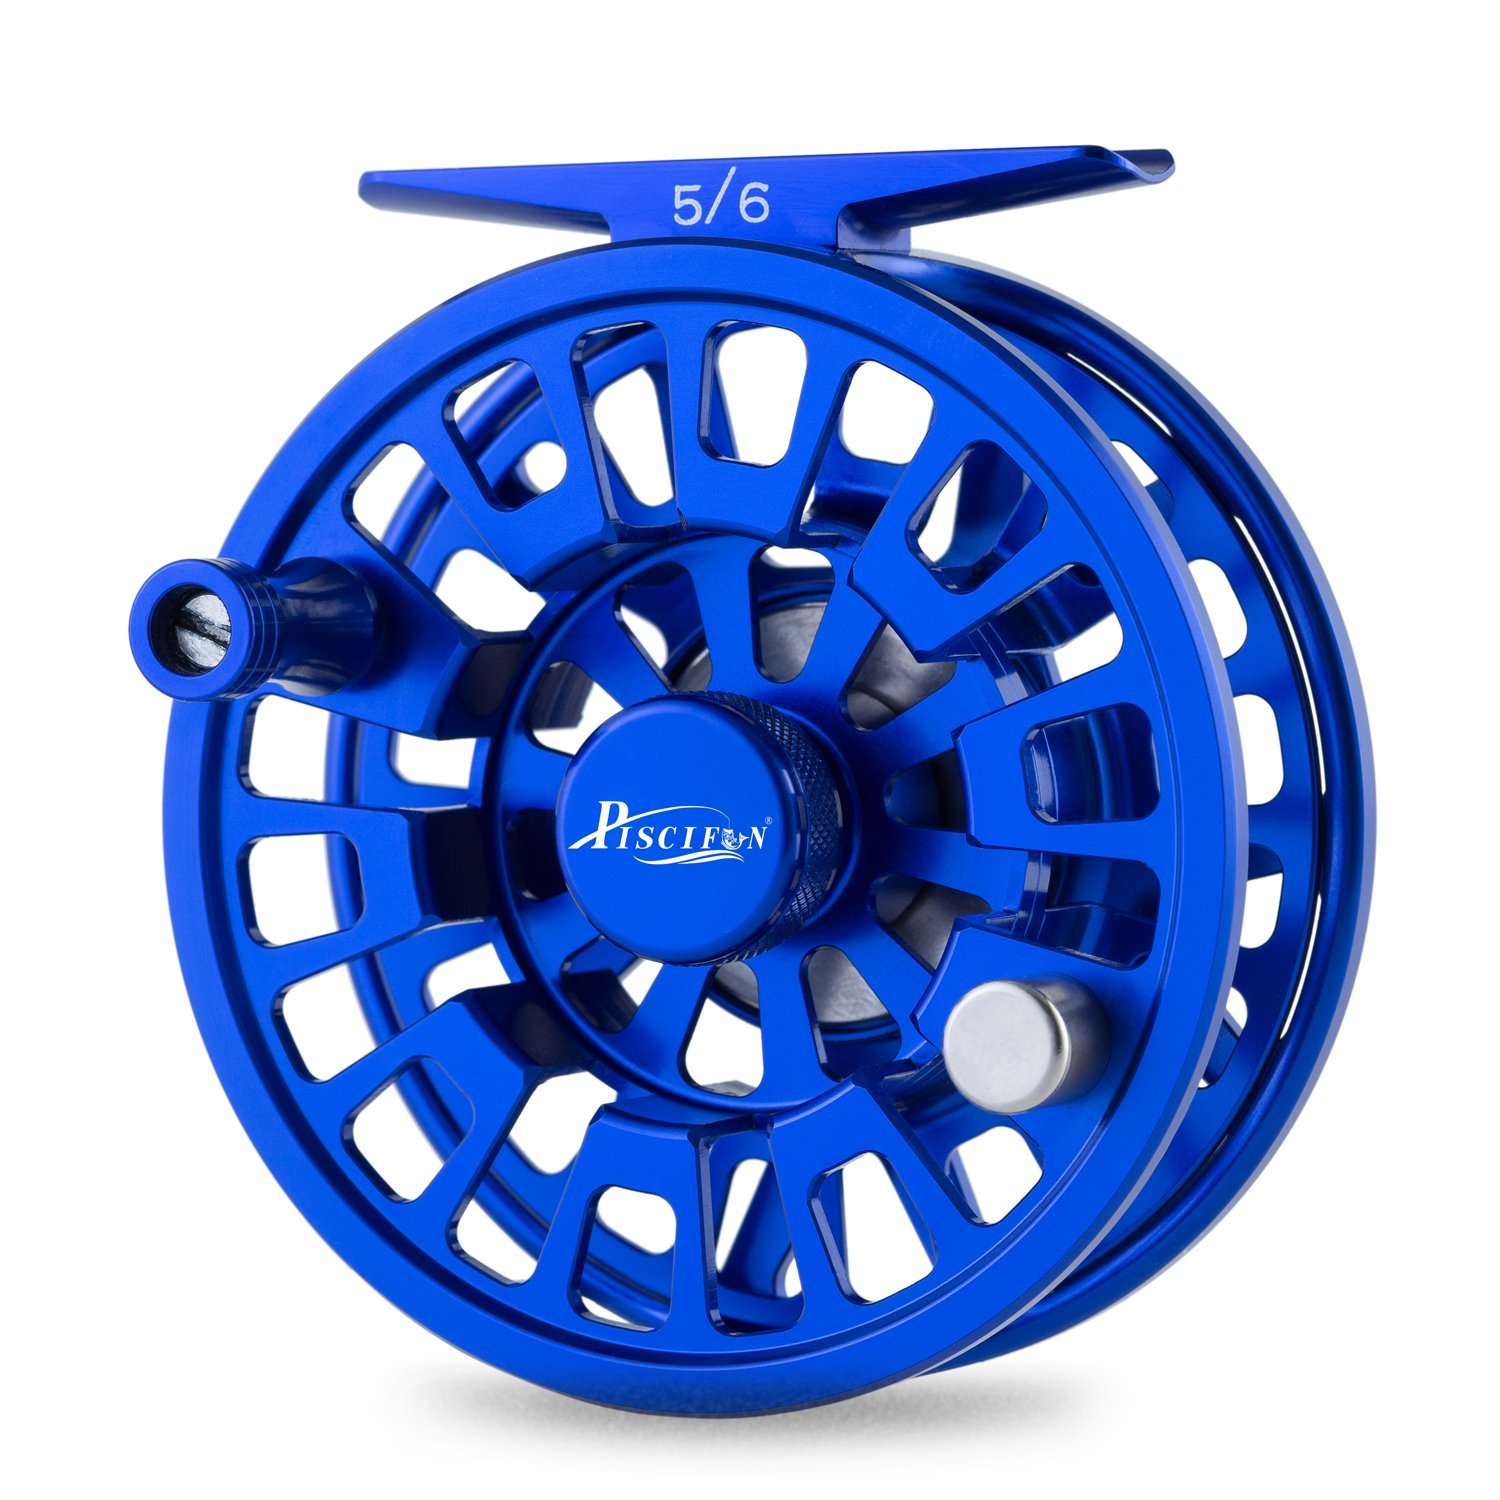 Piscifun Blaze Fly Fishing Reel